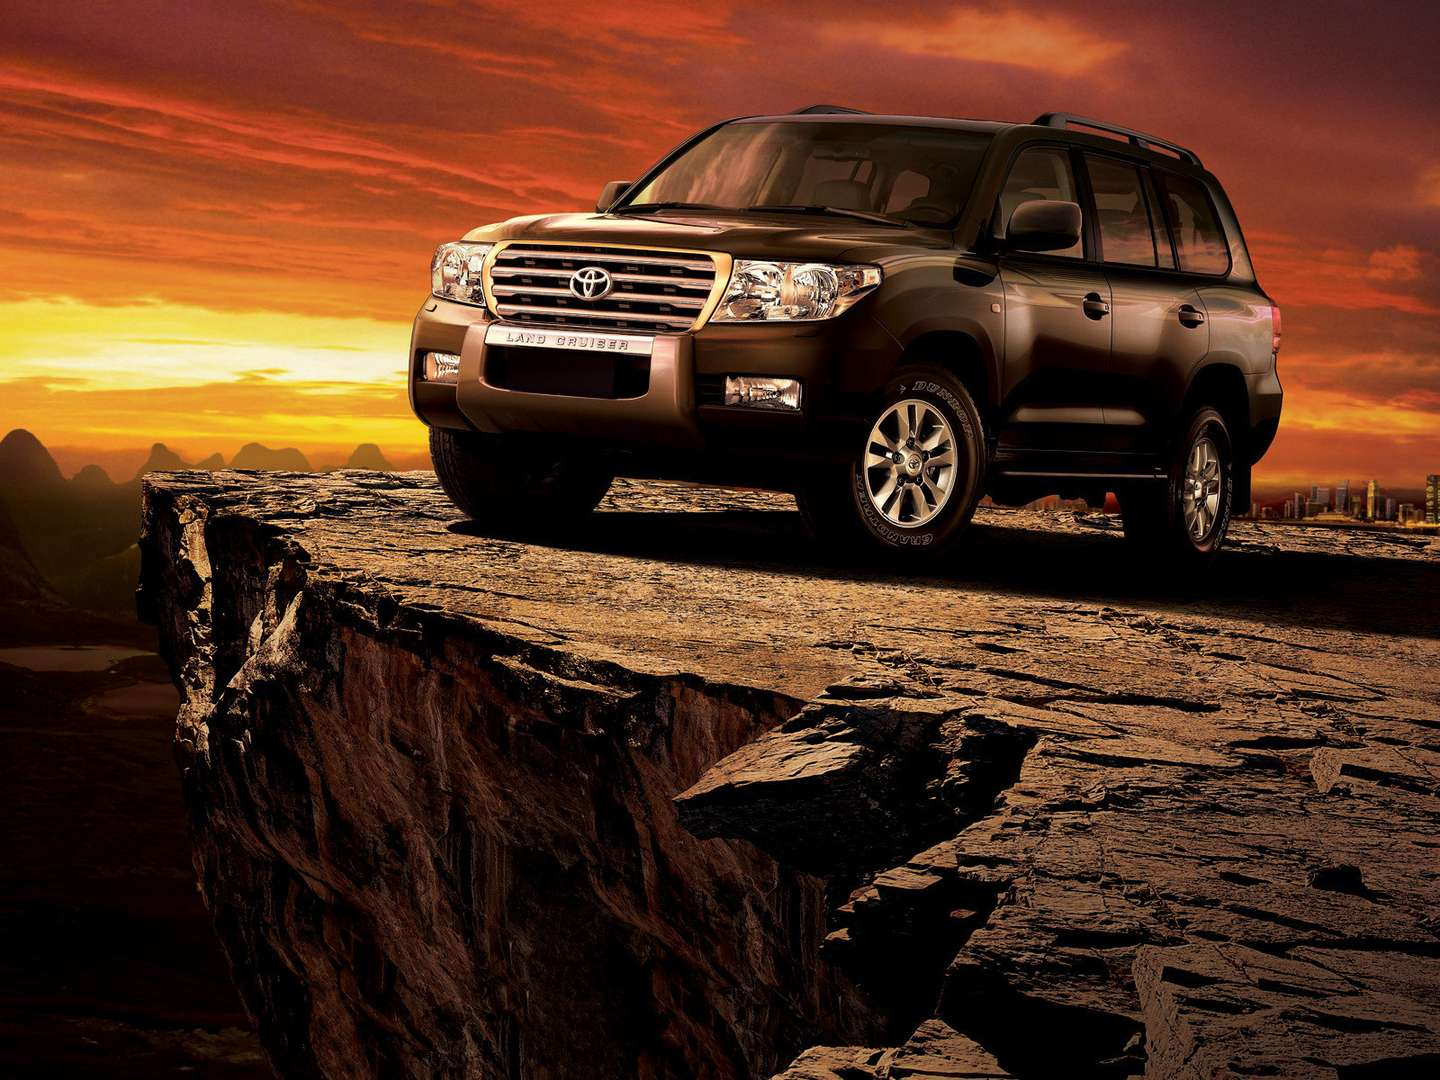 Toyota Land Cruiser 200 #8086673